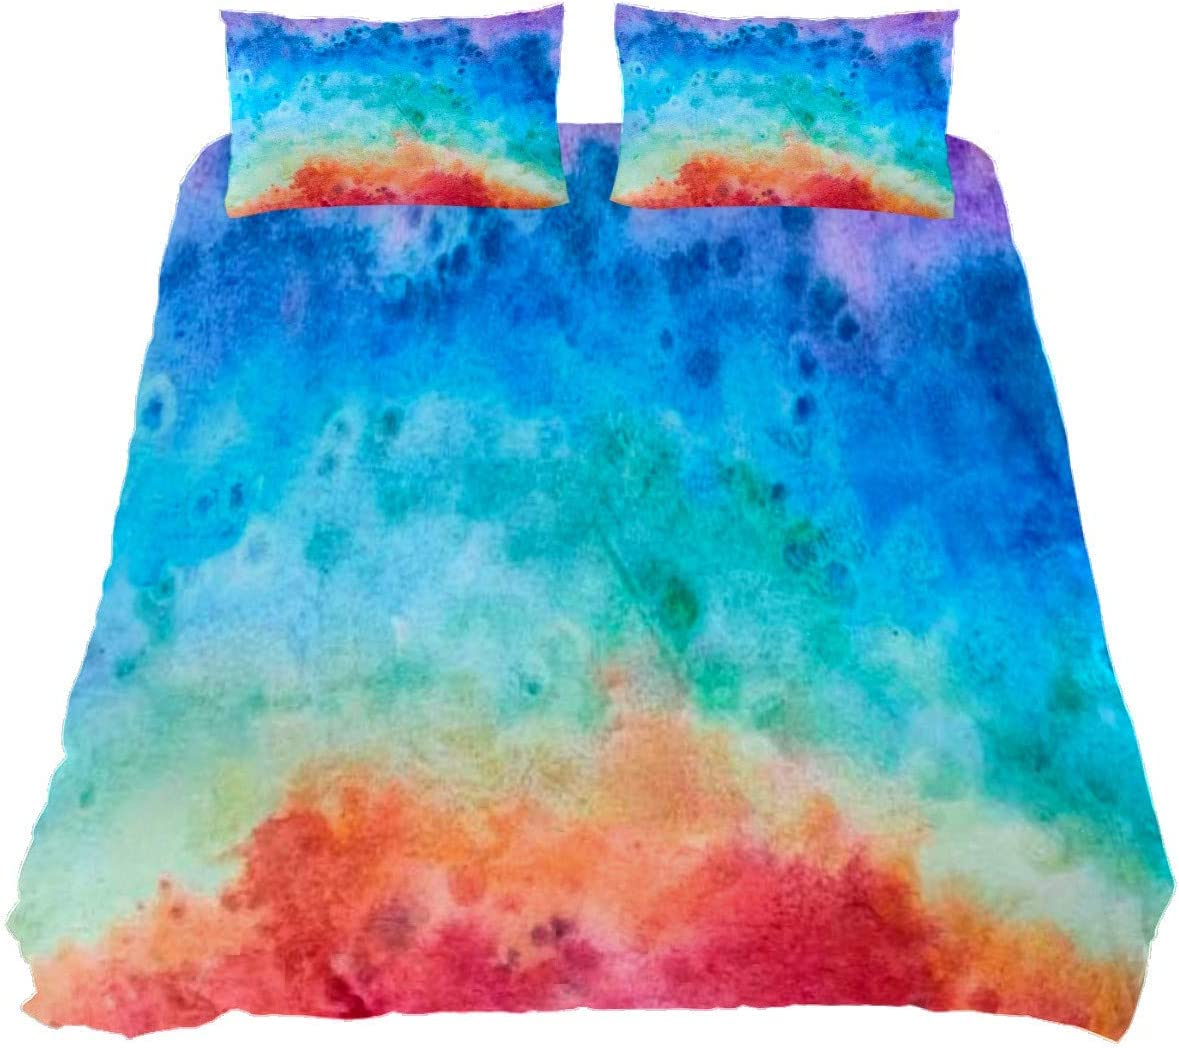 Rainbow Fresno Mall 67% OFF of fixed price Tie Dye Duvet Cover Set Bedding Bedclothes Decorative 3